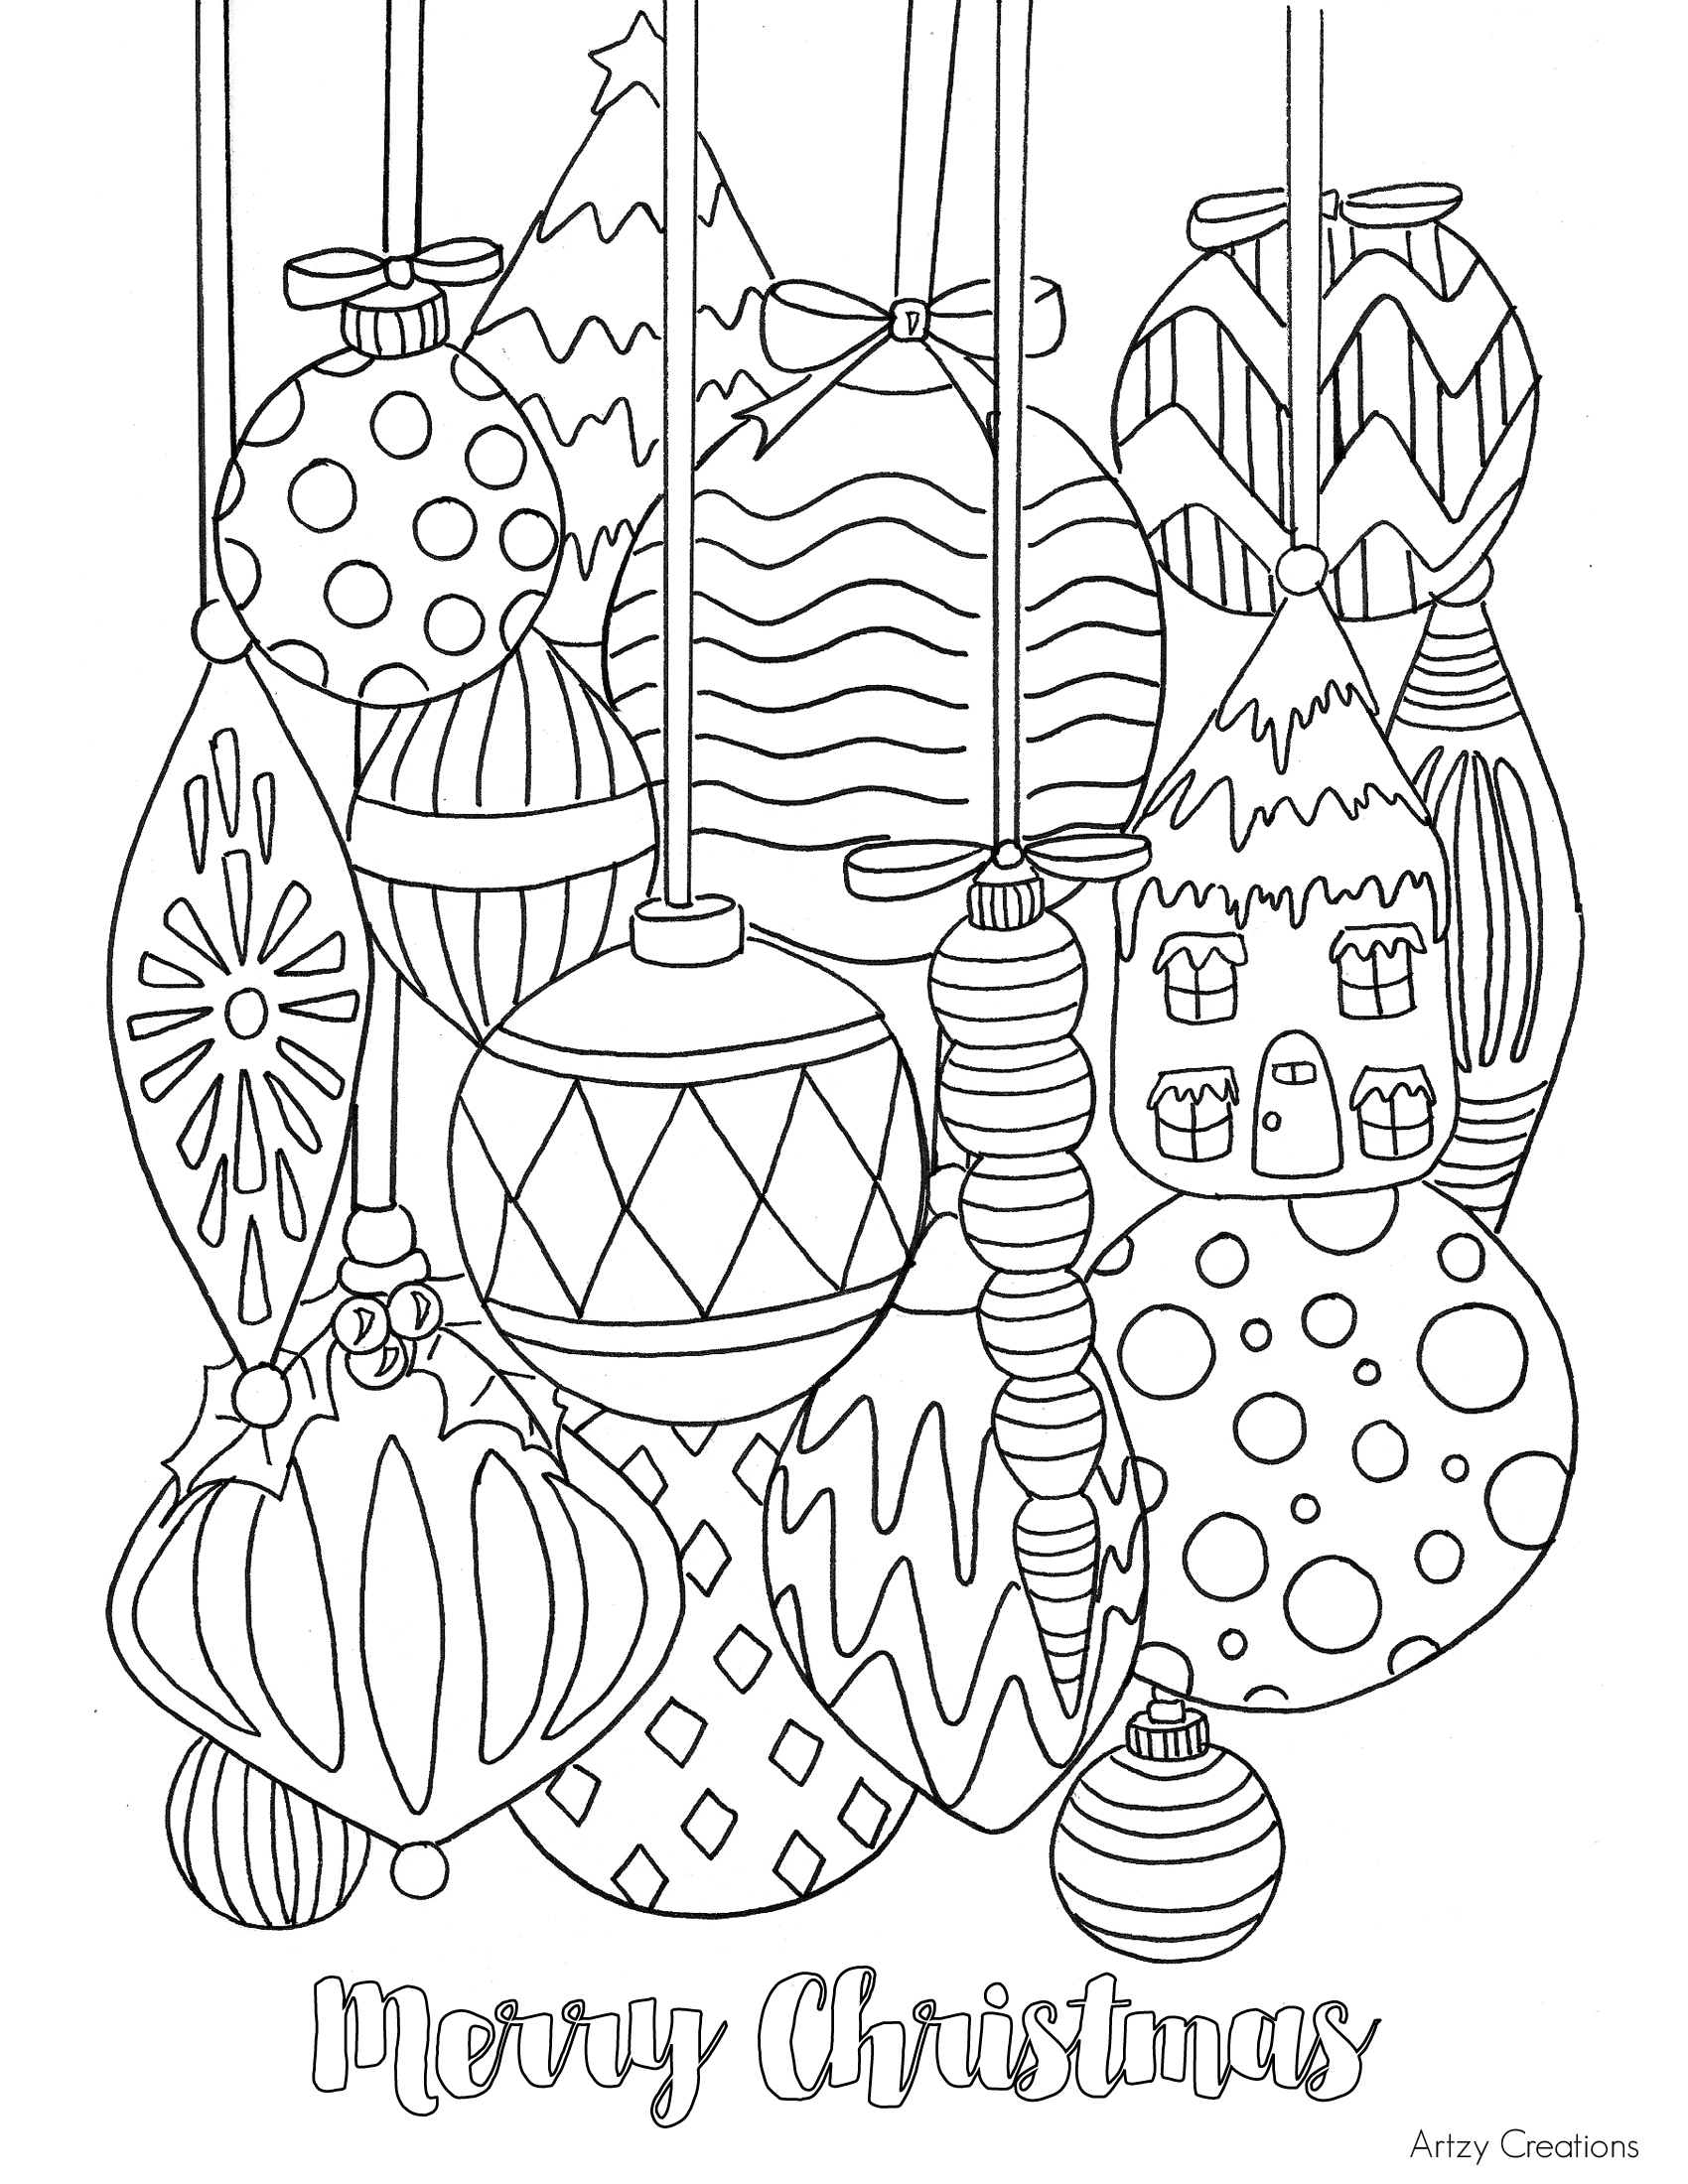 Free Christmas Ornament Coloring Page Tgif This Grandma Is Fun